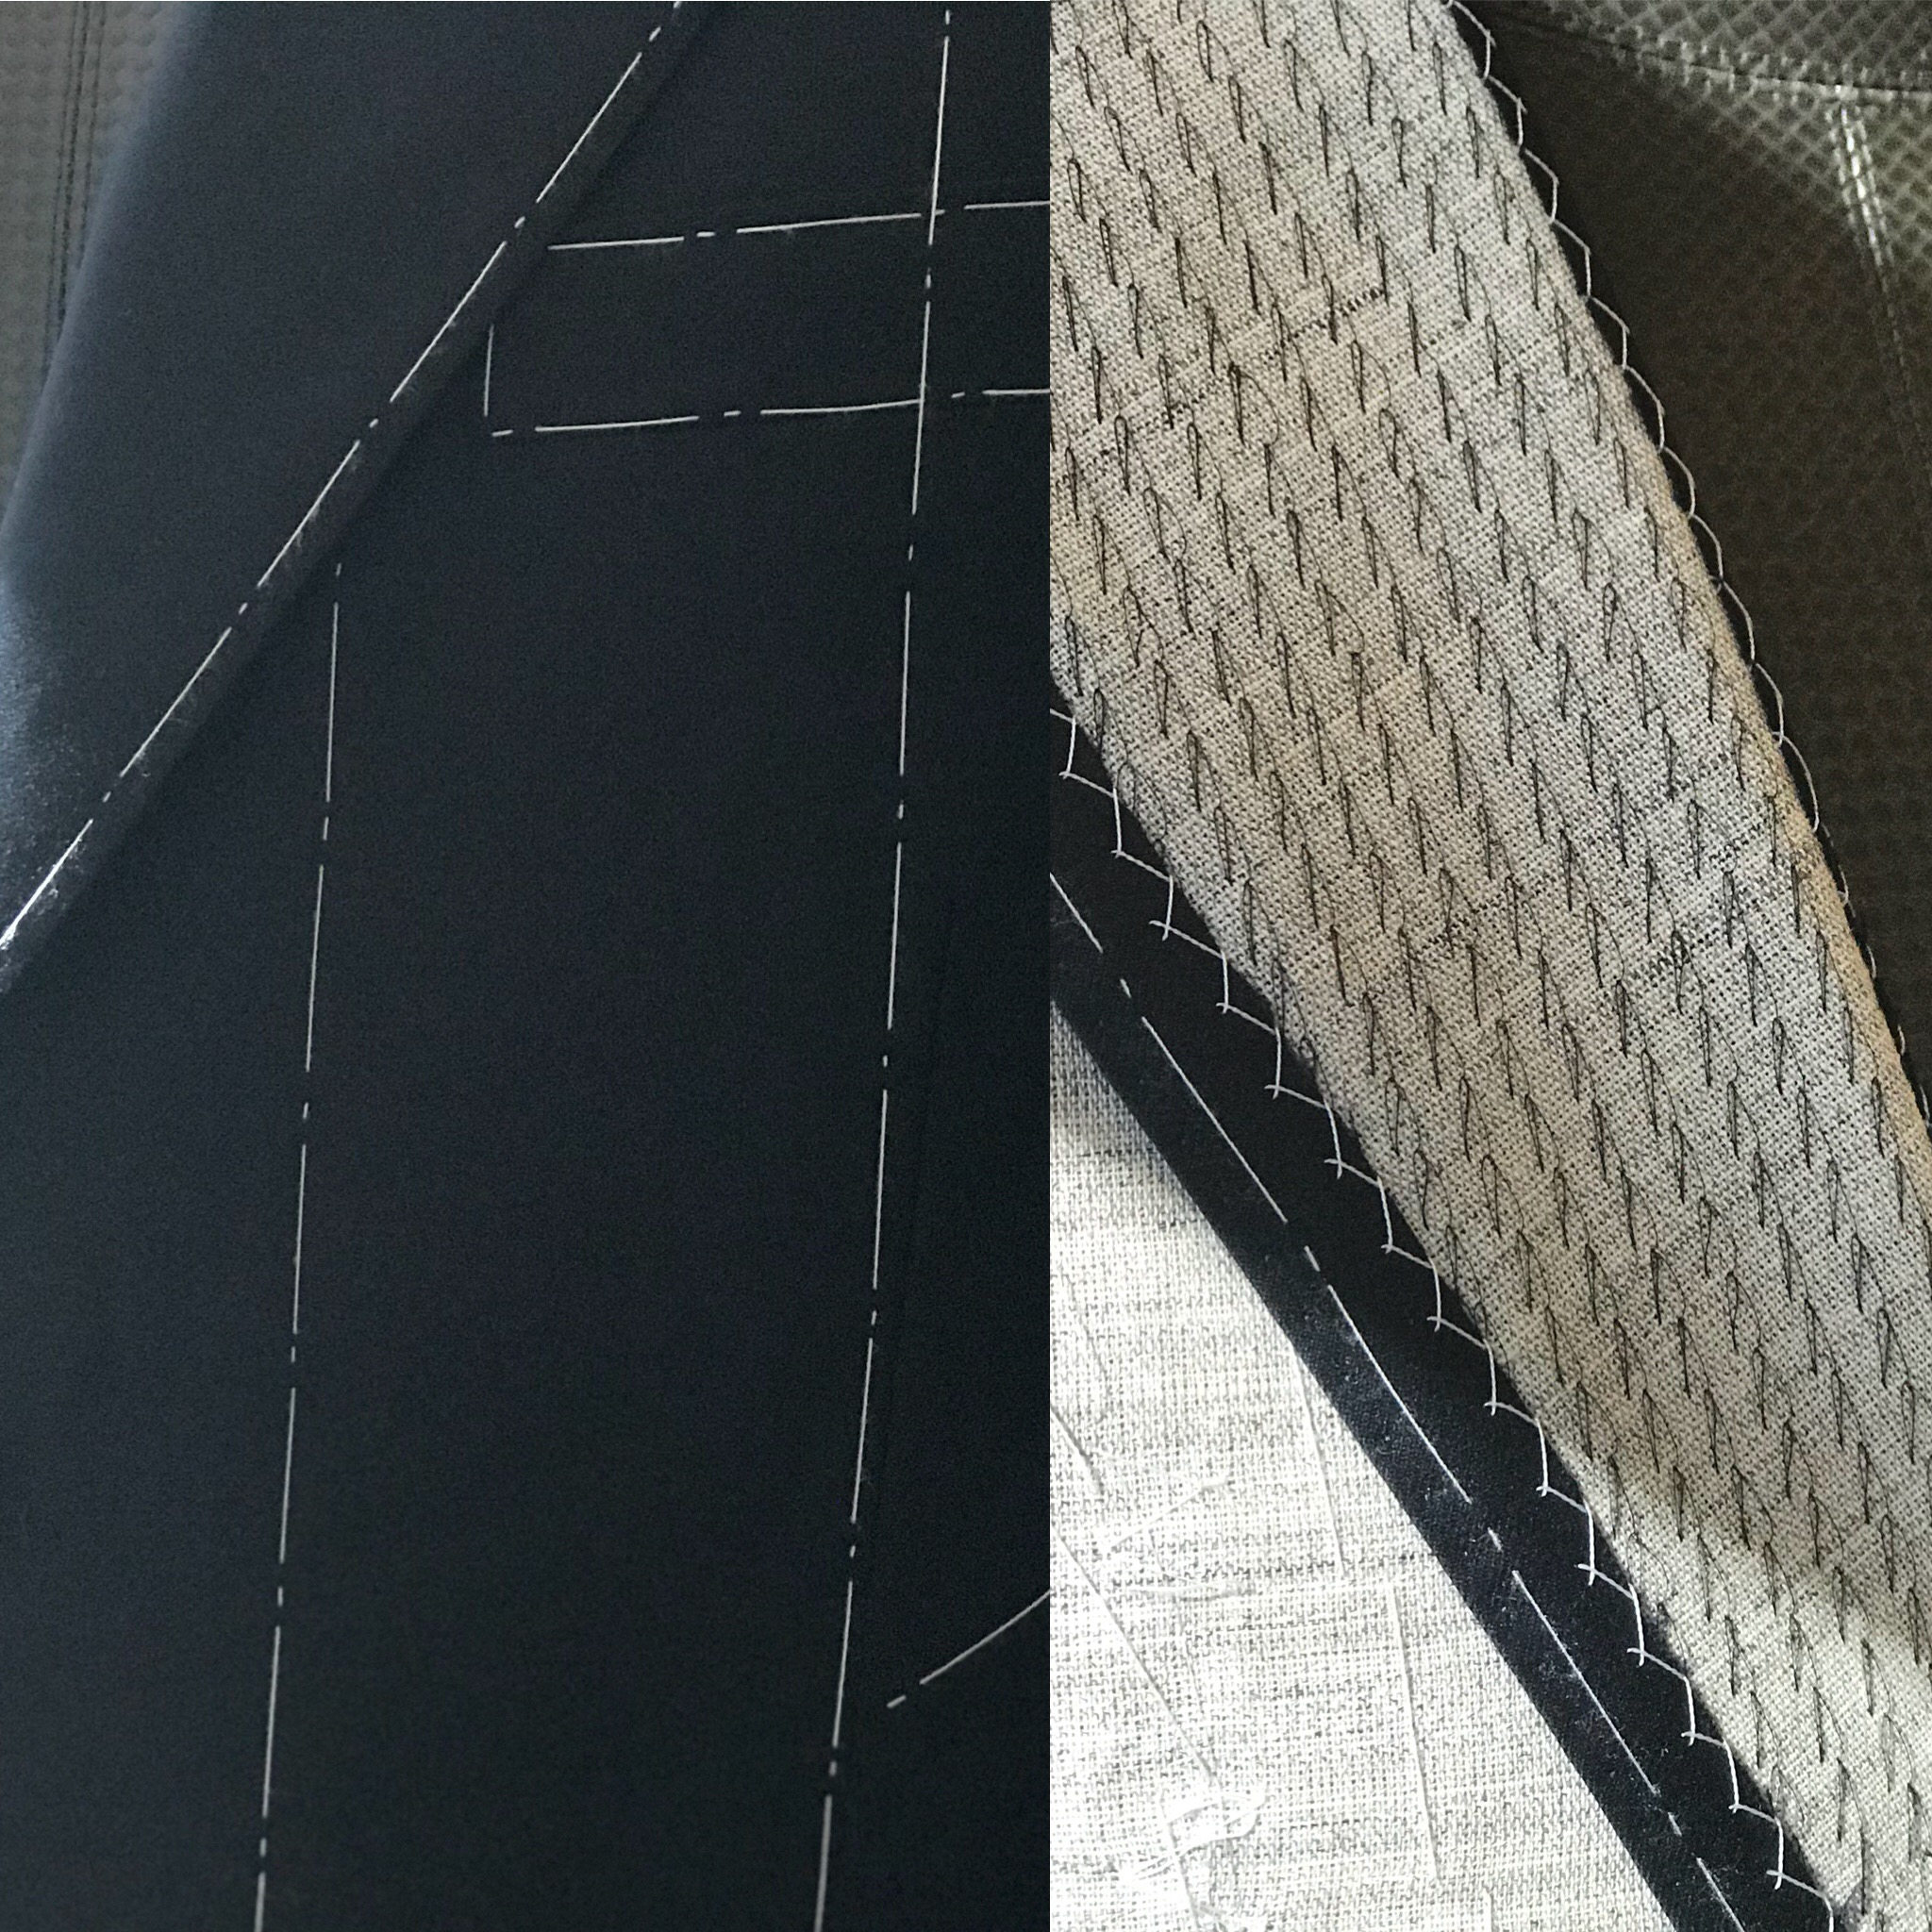 Left: Close up of temporary basting stitches used to hold canvas in place during production. Right: Close up of the basting stitches used in the lapel